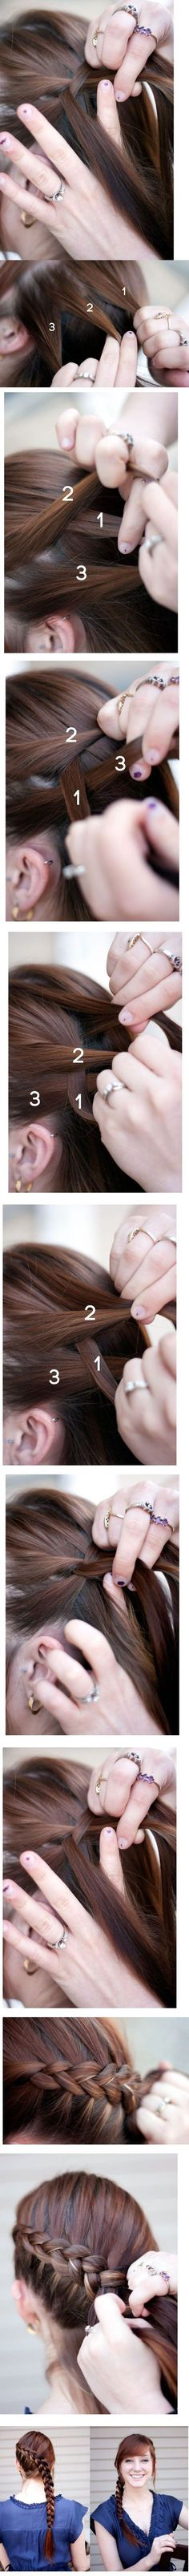 French braid via imgfave.com